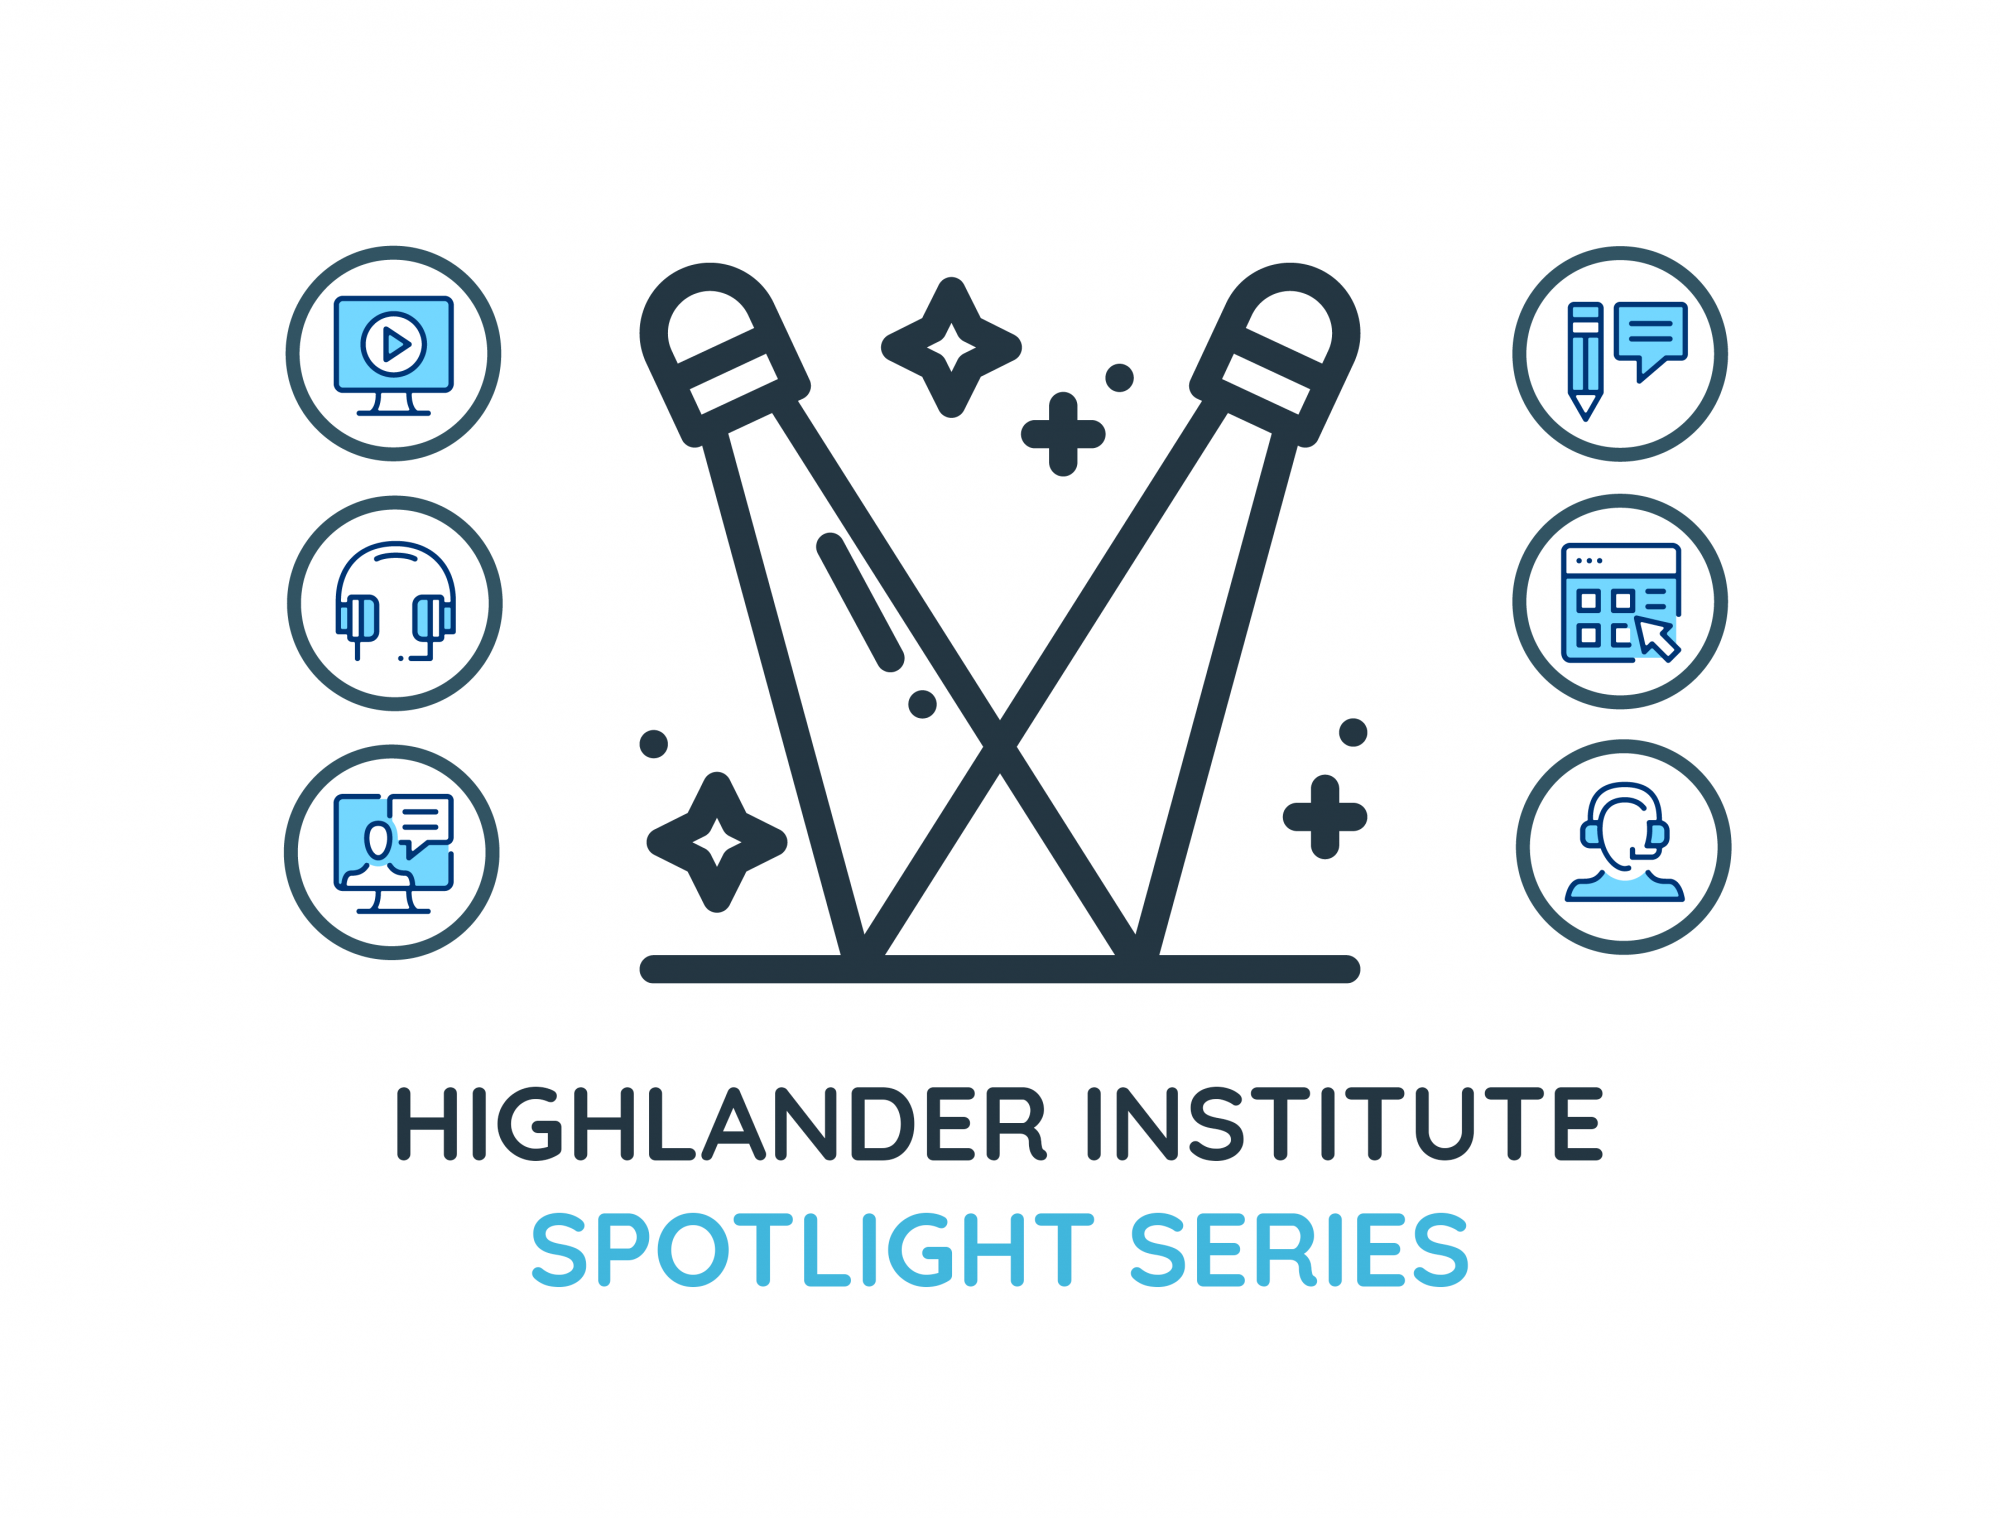 highlander-institute-spotlight-series